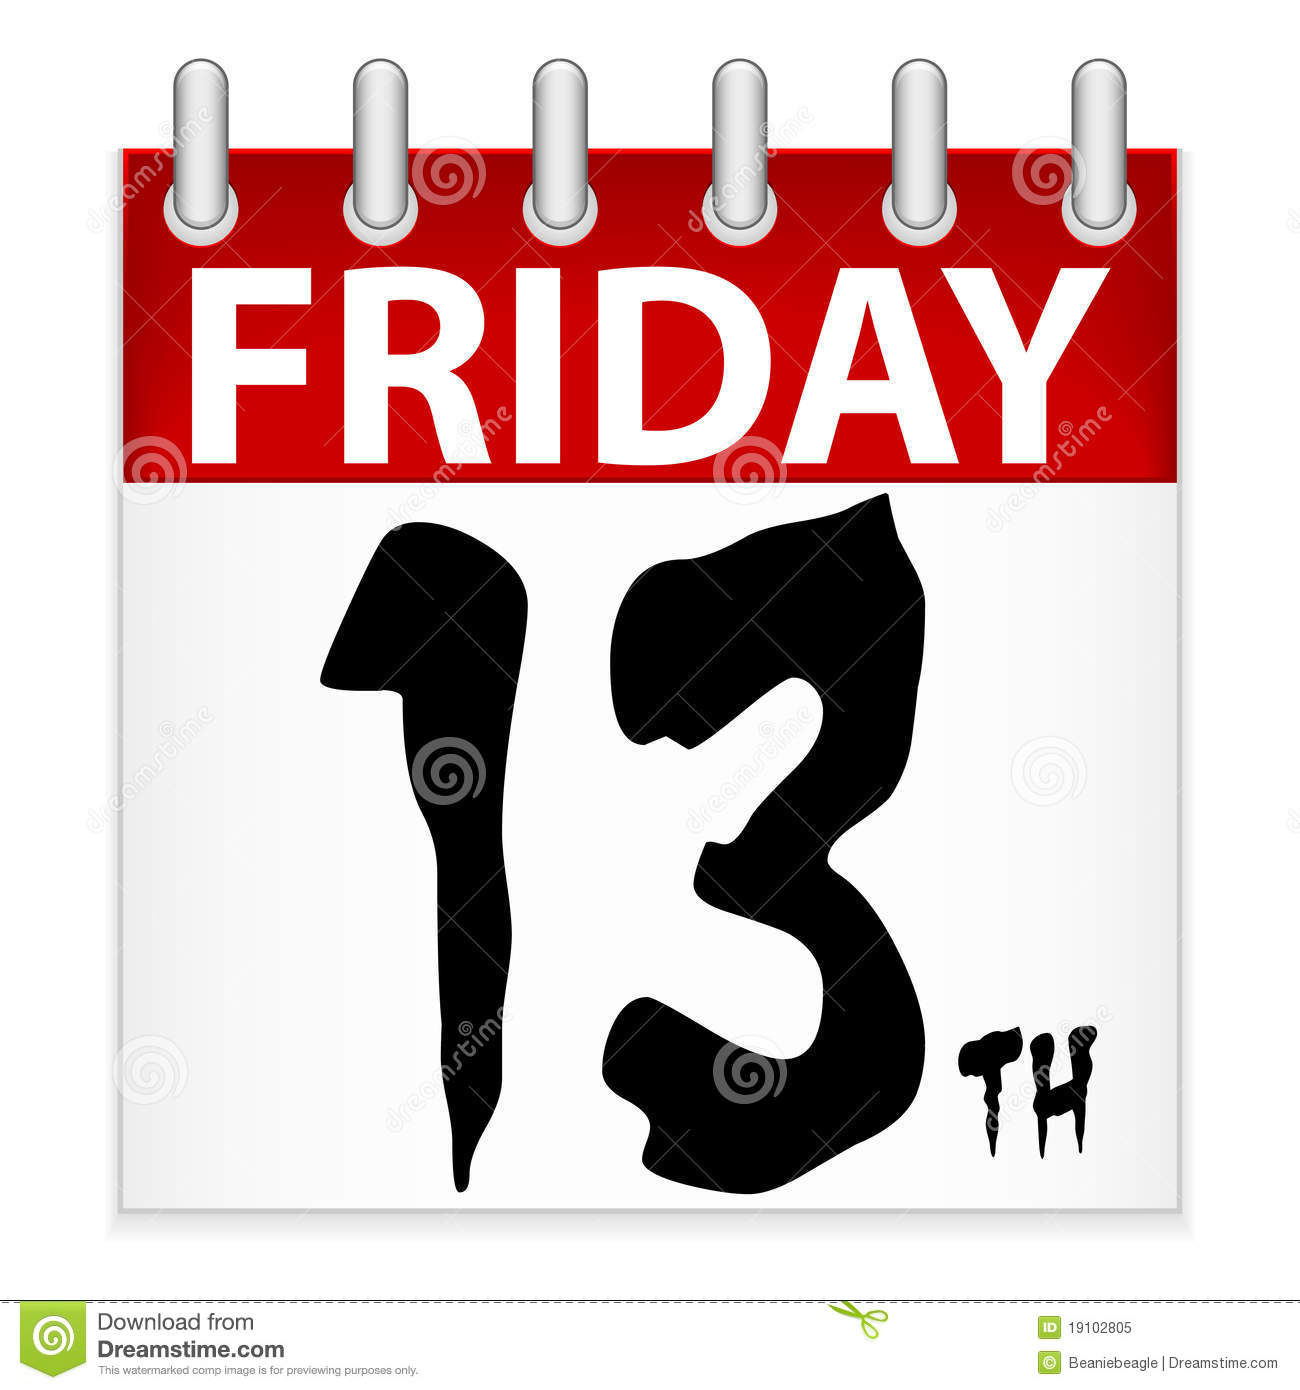 Stay Sane Friday 13th Is Upon Us Prima N-Stay Sane Friday 13th Is Upon Us Prima News-19